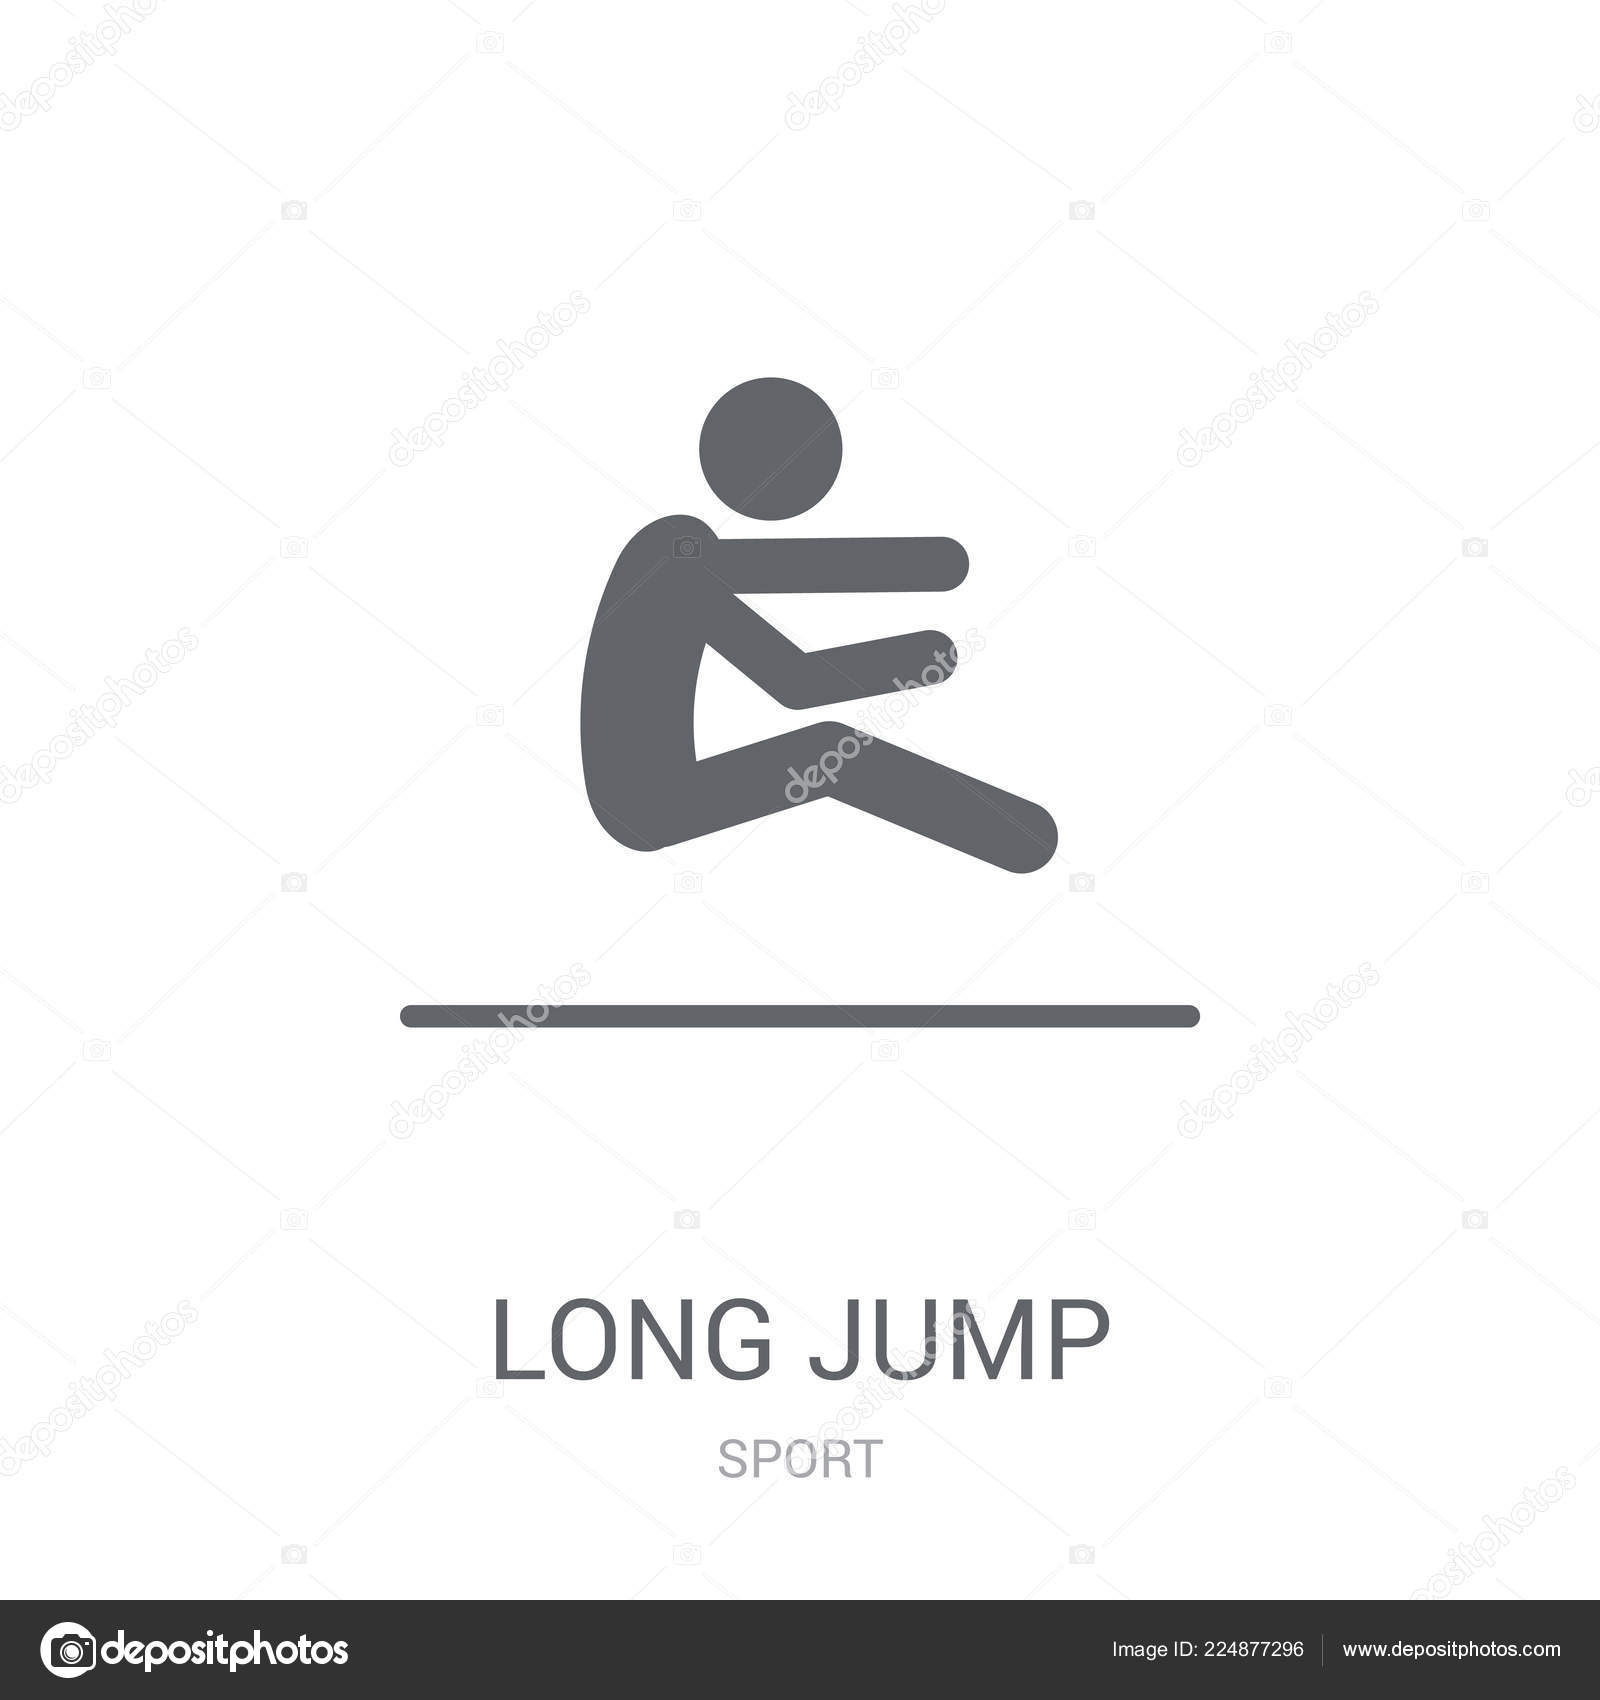 Long jump icon trendy long jump logo concept white background stock vector